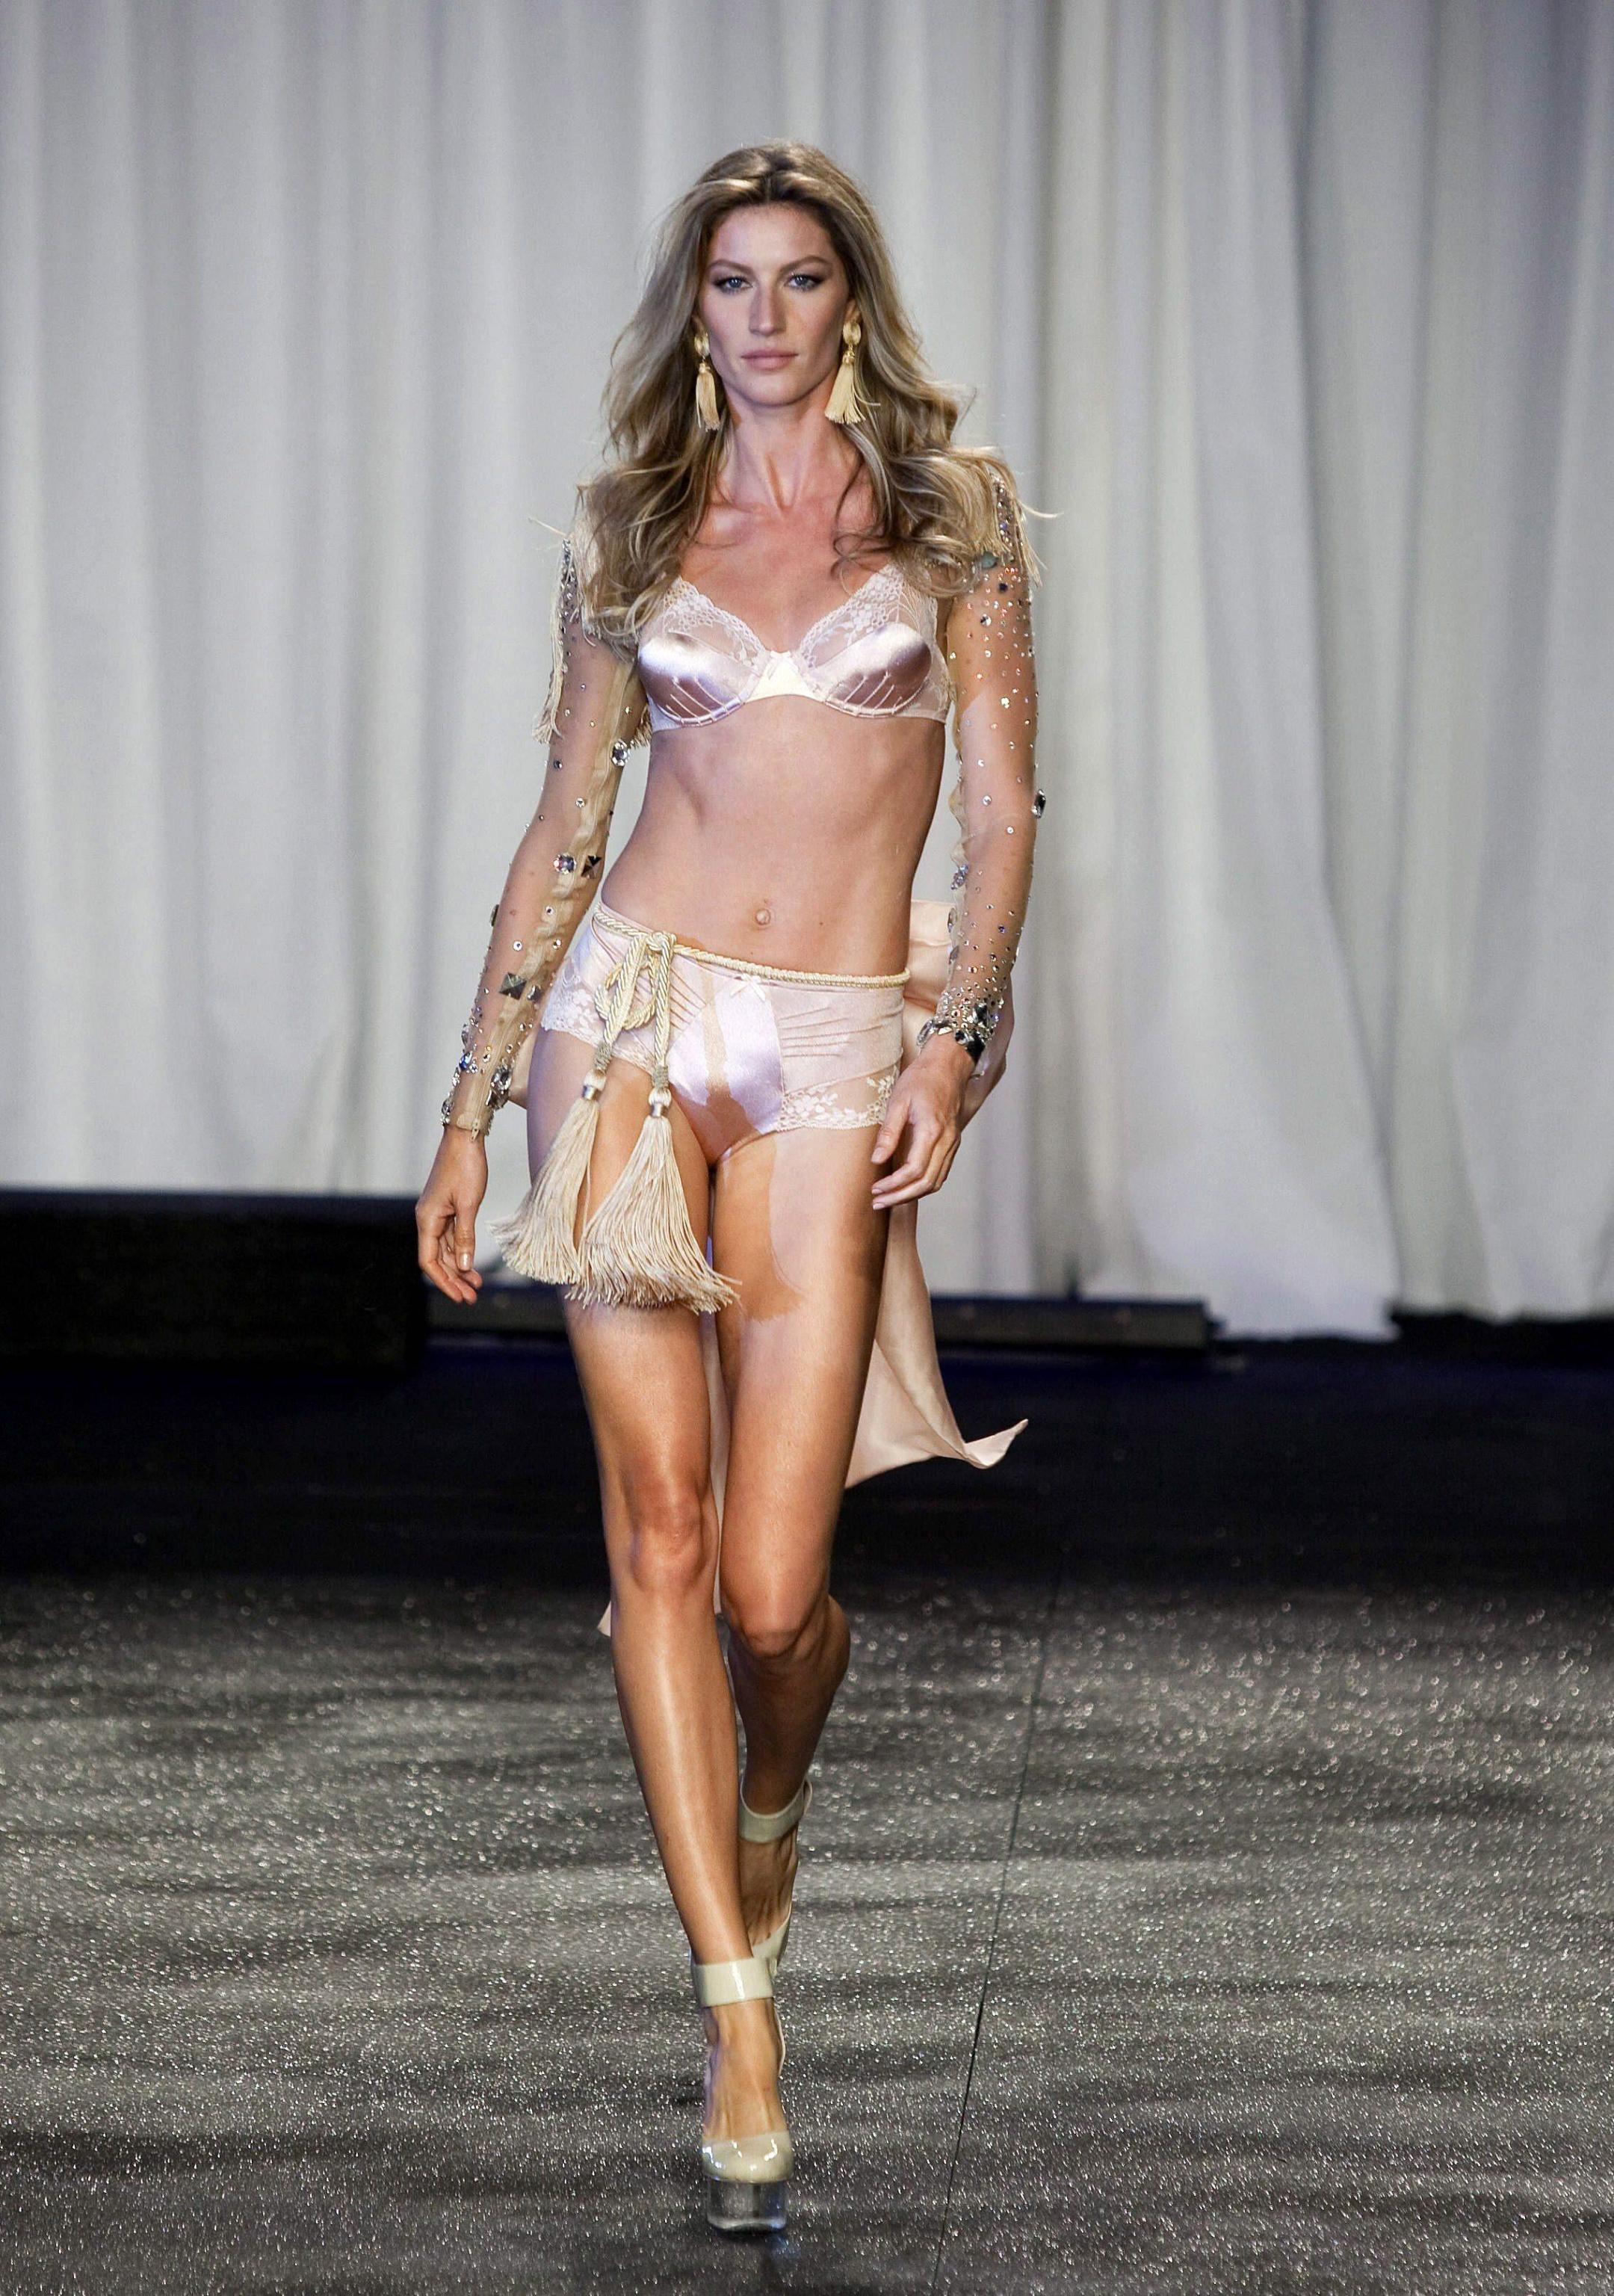 Gisele Bundchen, world's highest paid top model in 2012